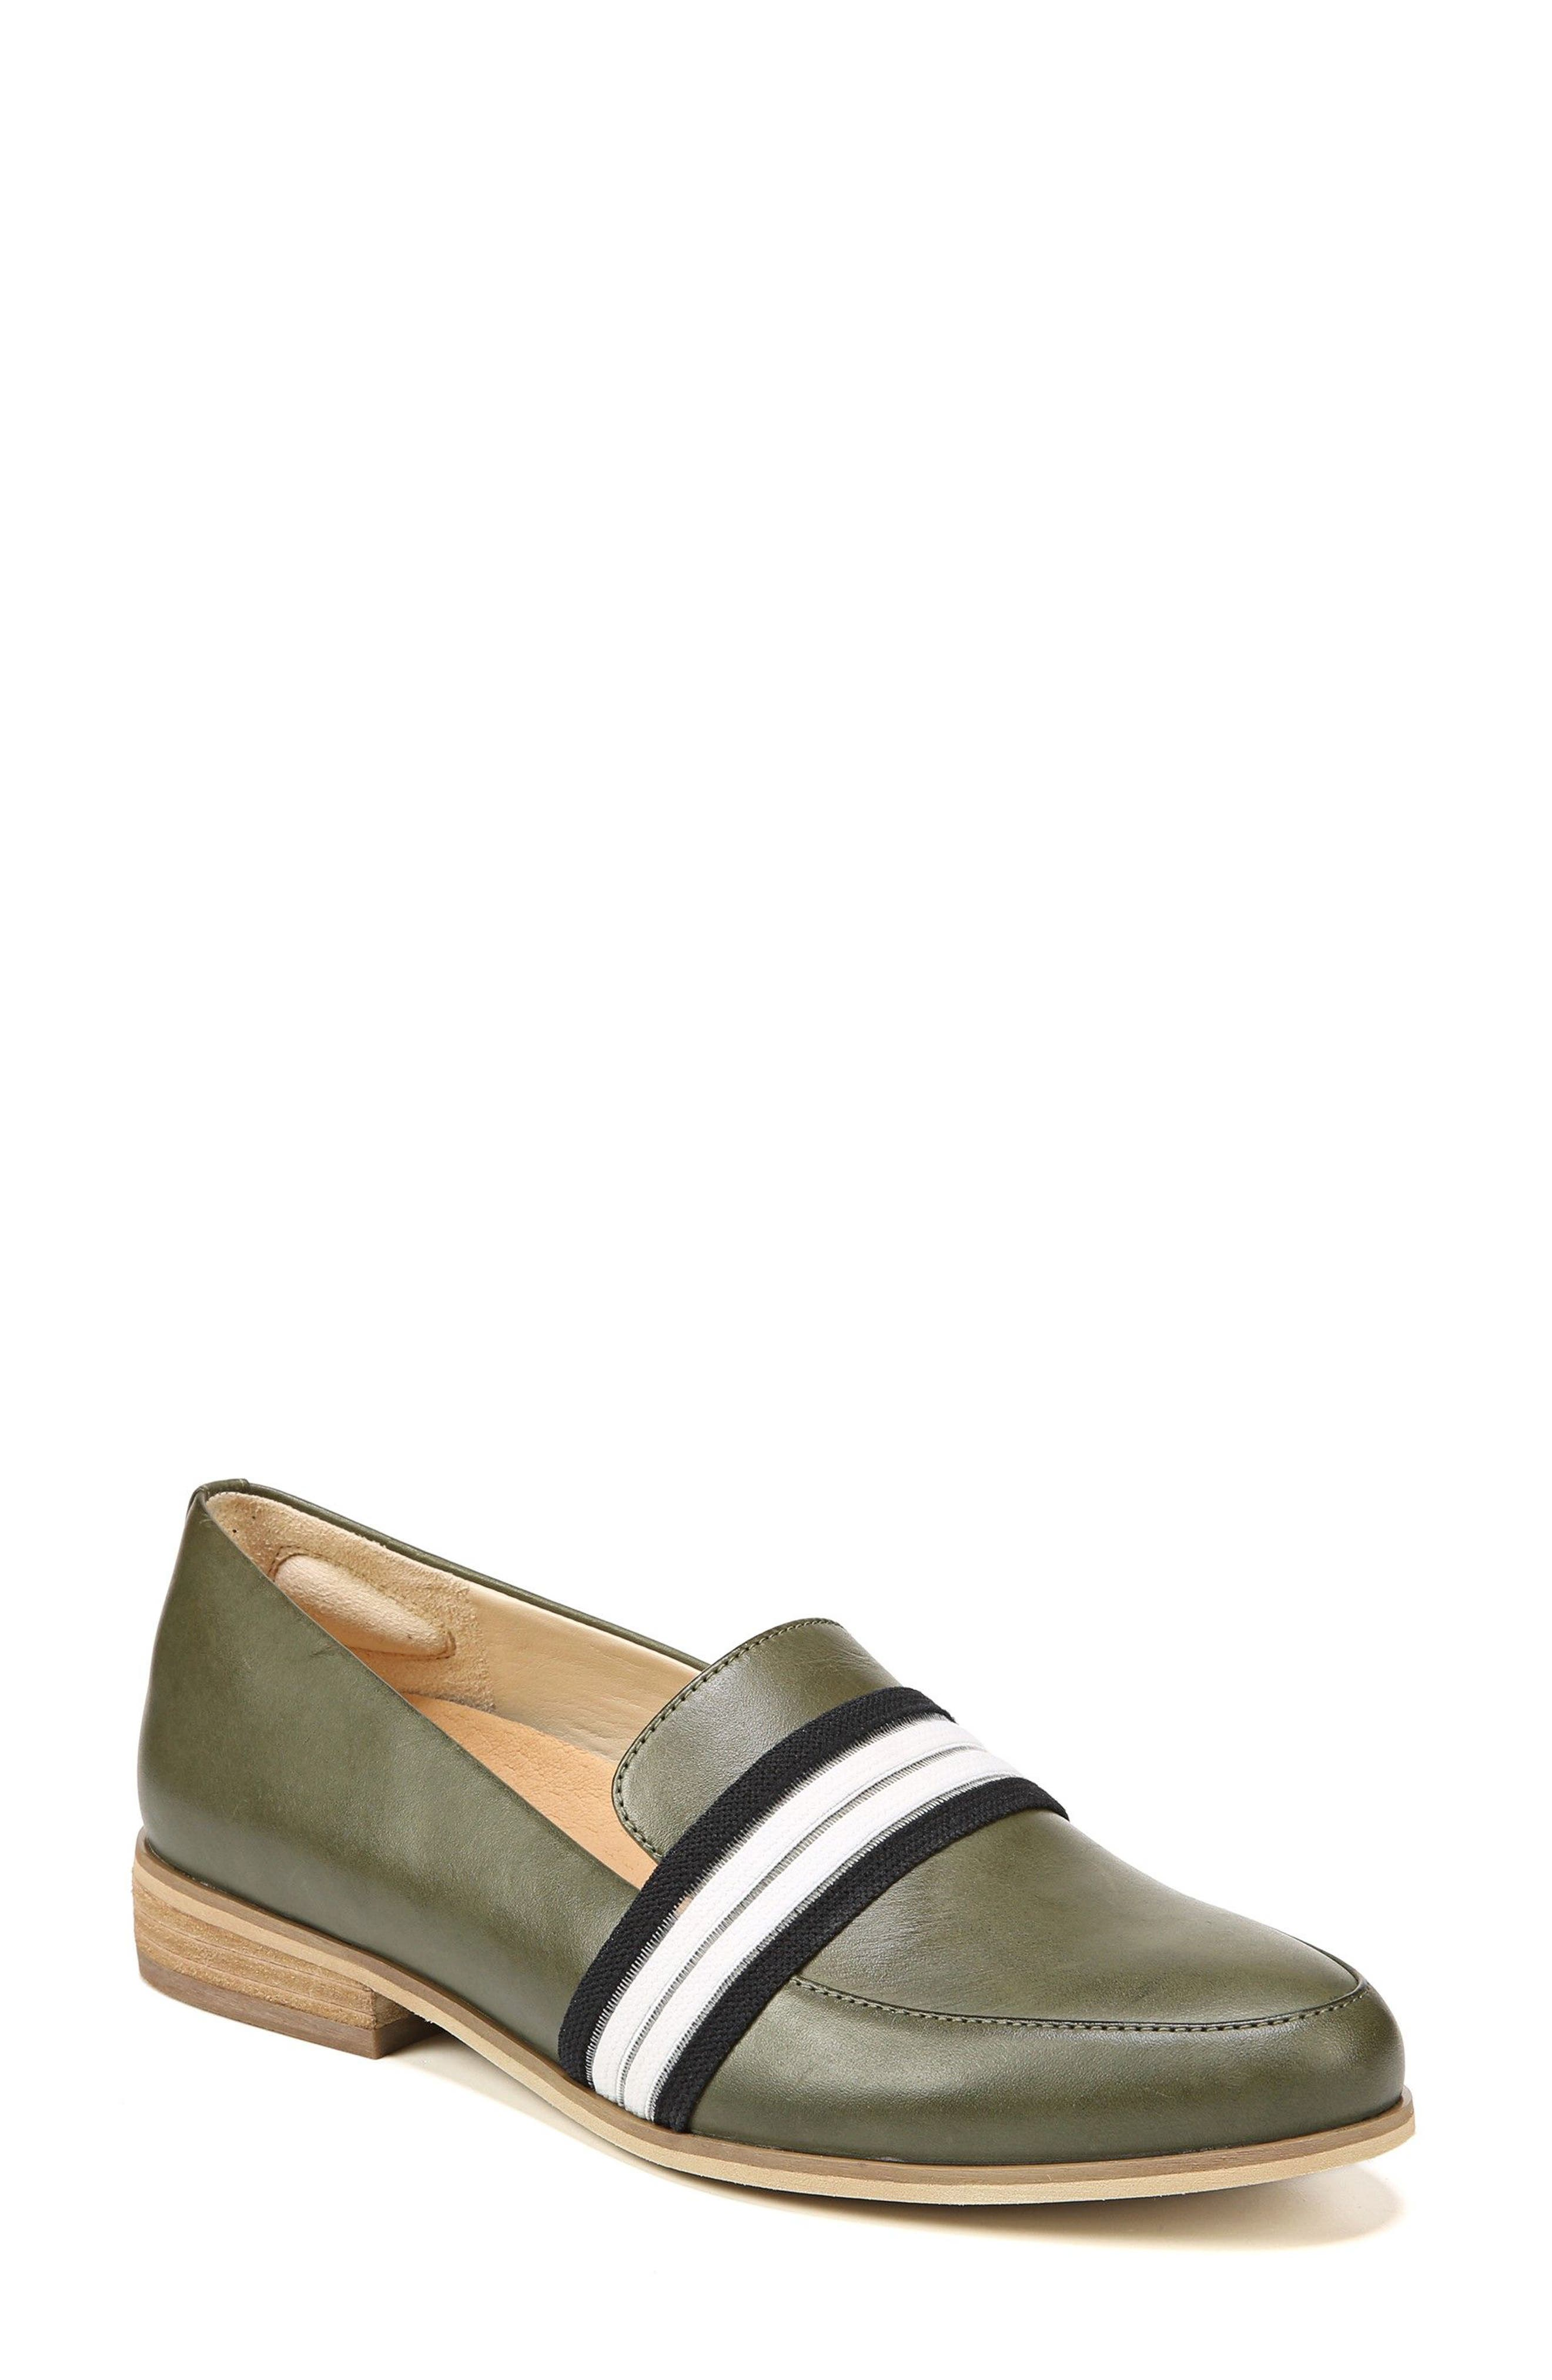 Everett Band Loafer,                             Main thumbnail 1, color,                             GREEN LEATHER